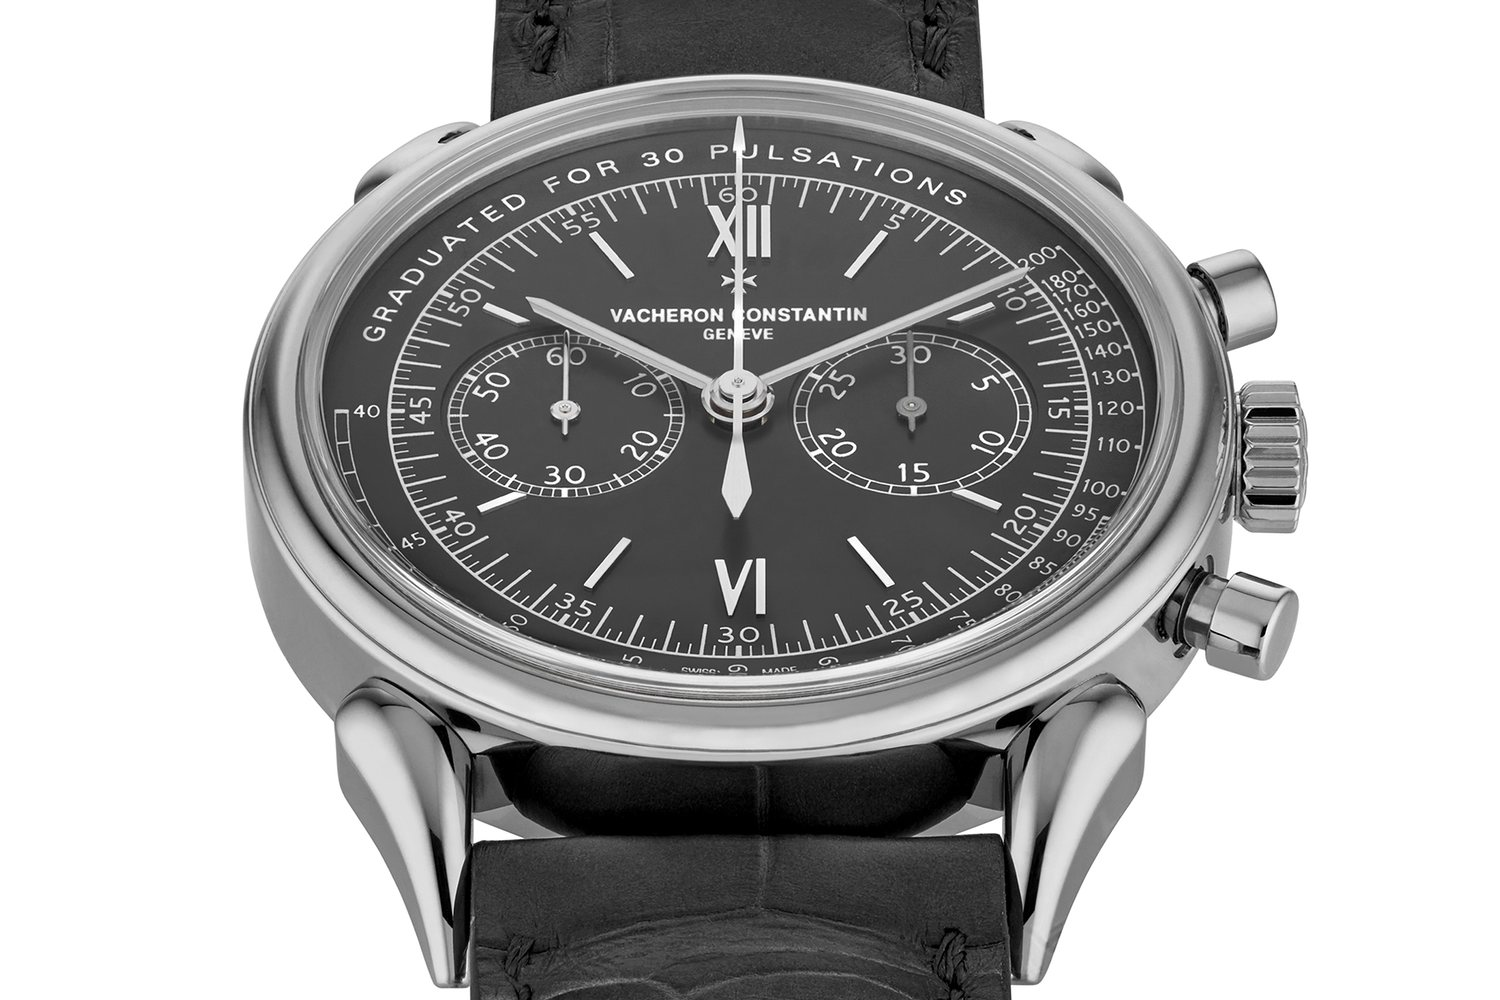 Vacheron Constantin Hodinkee watch